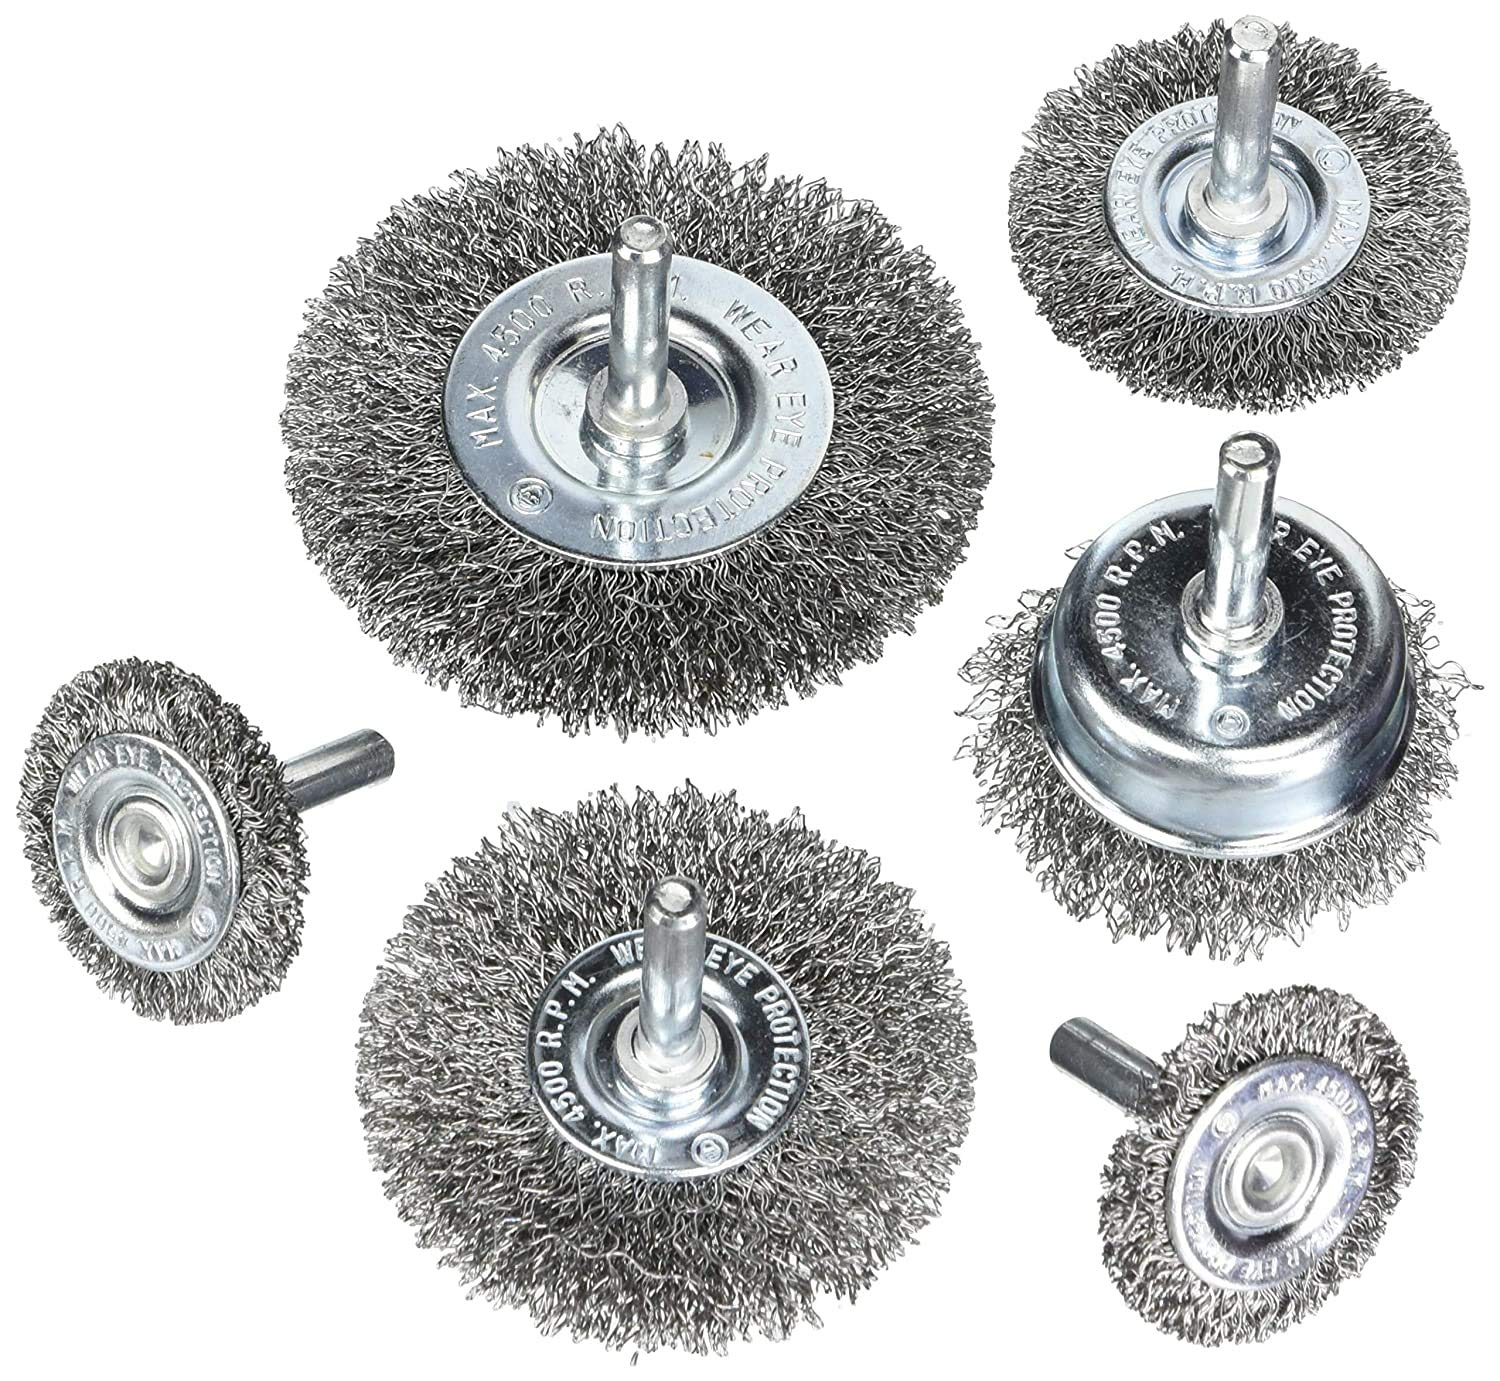 HOYIN Wire Wheel Cup Brush Set, Coarse Crimped Carbon Steel